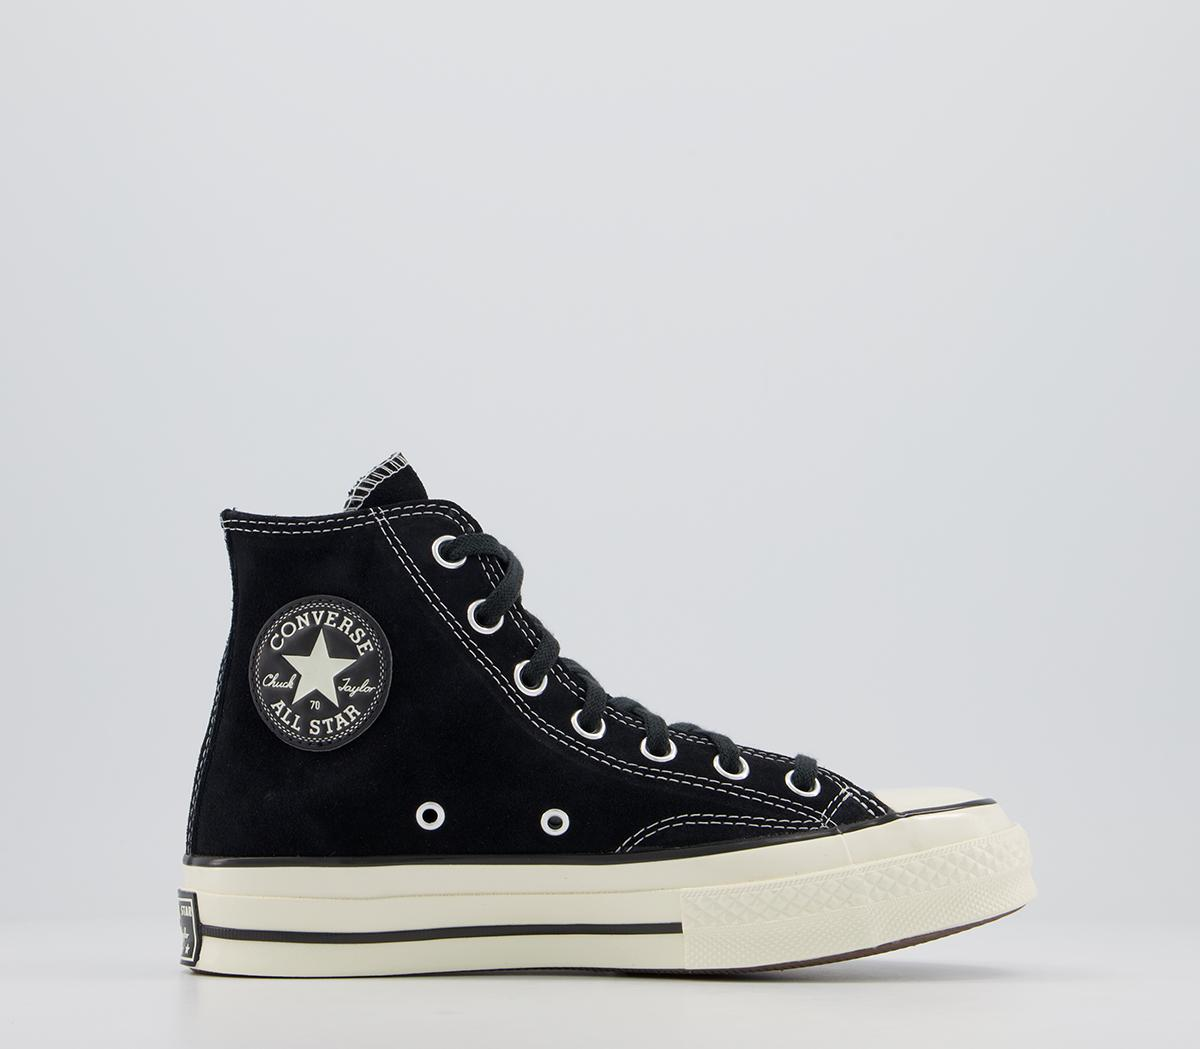 Converse All Star Hi 70s Trainers Suede